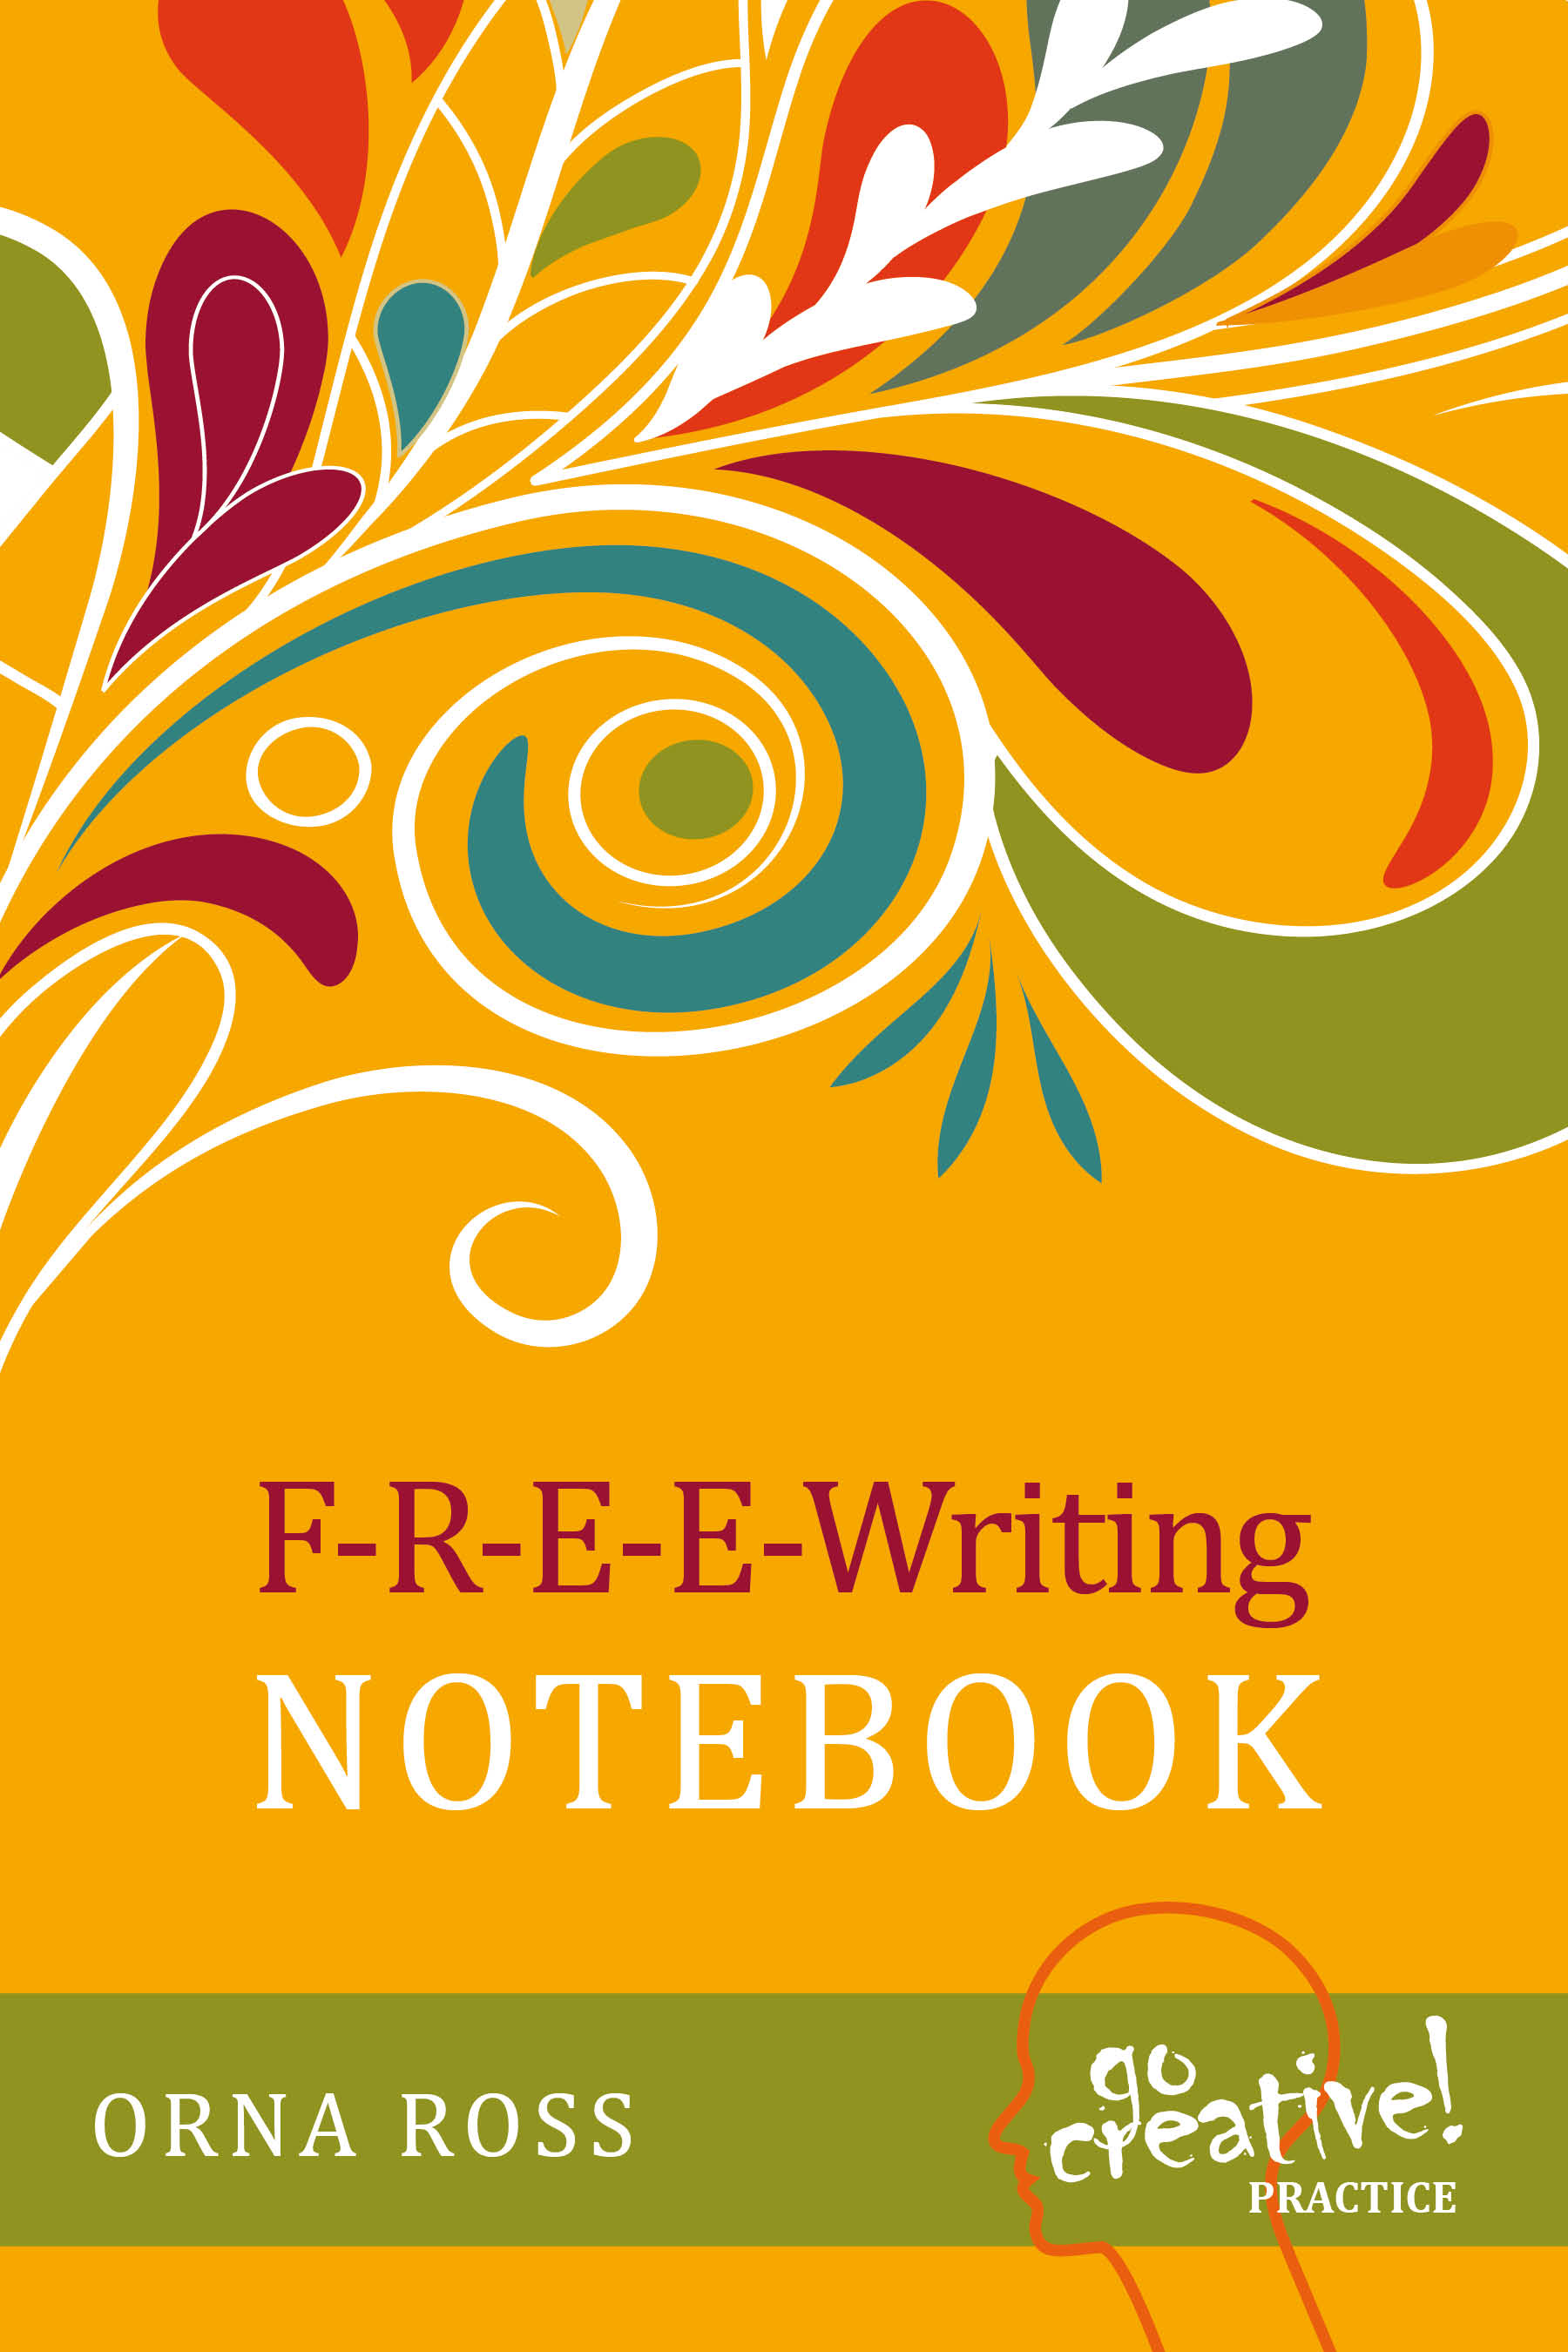 f-r-e-e-writing-notebook-ebook-cover